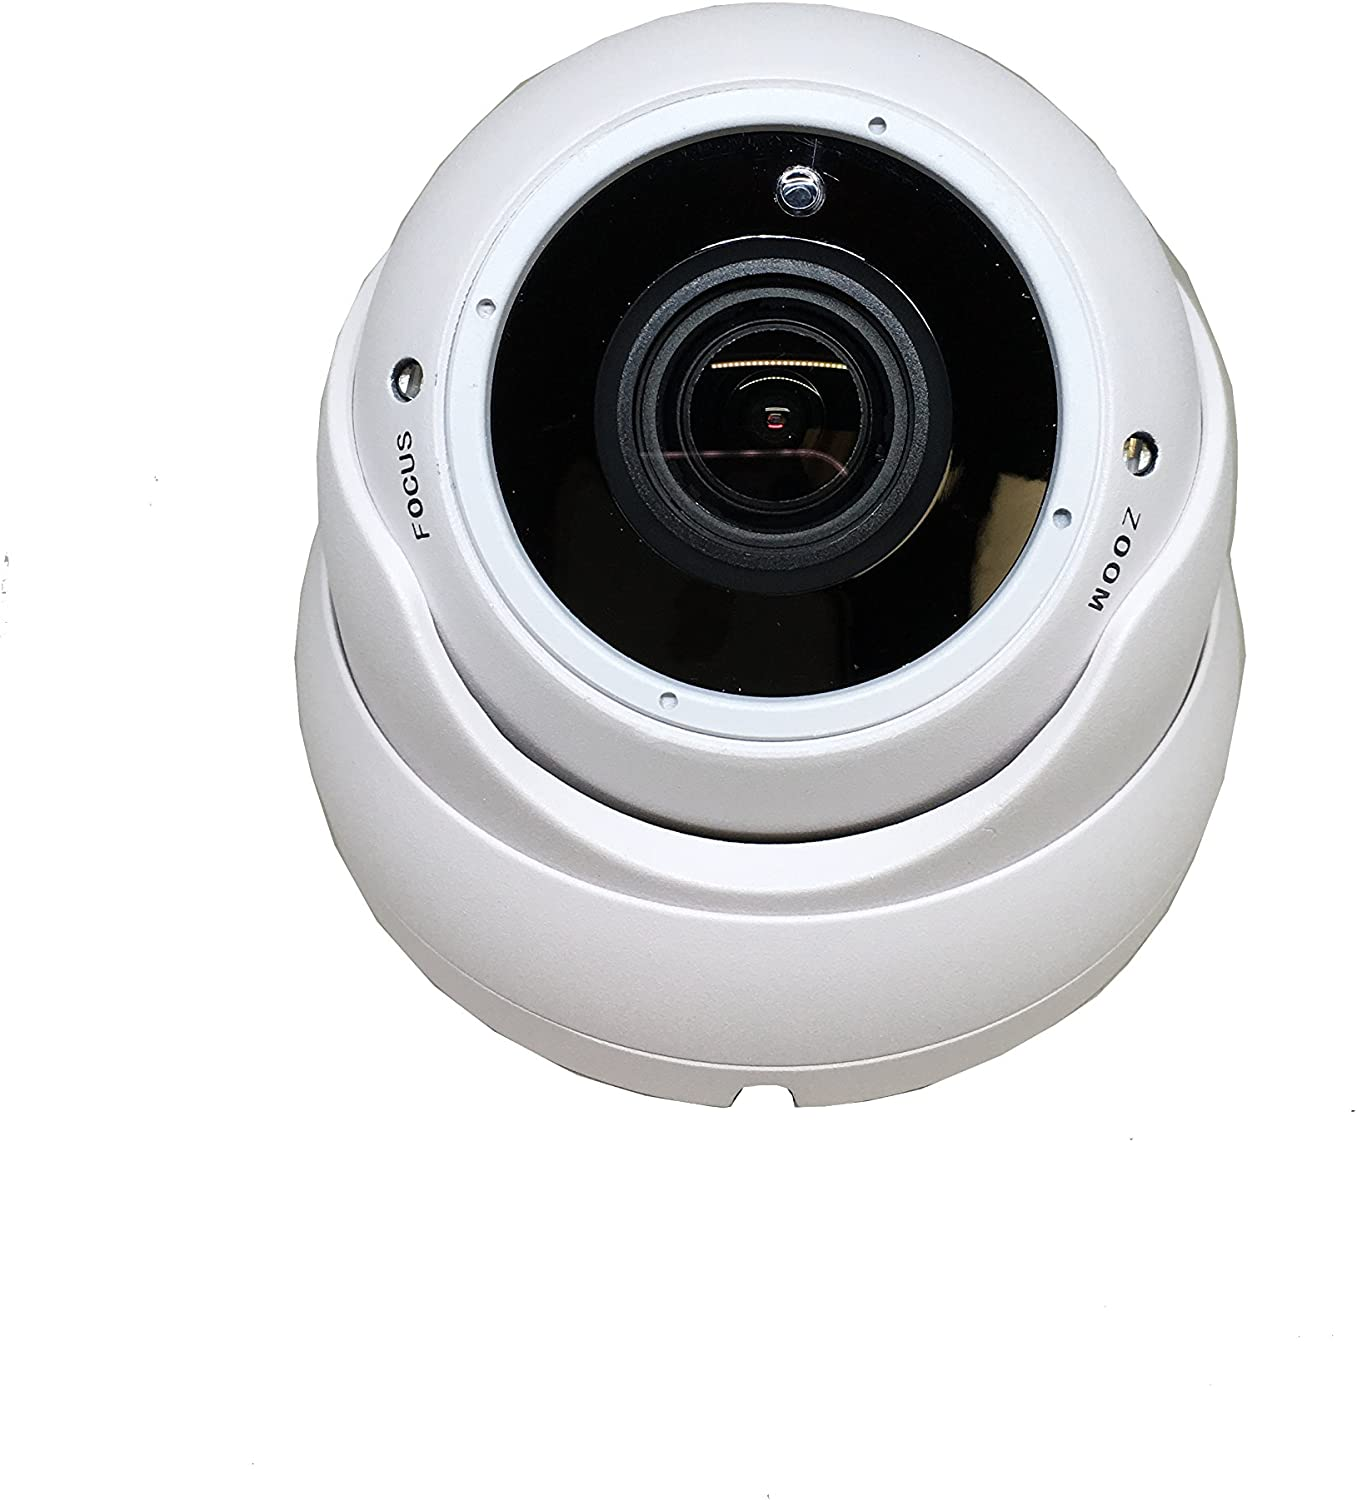 (2 Pack) 101AV Security Dome Camera 1080P True Full-HD 4 IN 1(TVI, AHD, CVI, CVBS) 2.8-12mm Variable Focus Lens SONY 2.4Megapixel STARVIS Image Sensor IR In/Outdoor WDR OSD Camera (White) 713XQEfyjWL